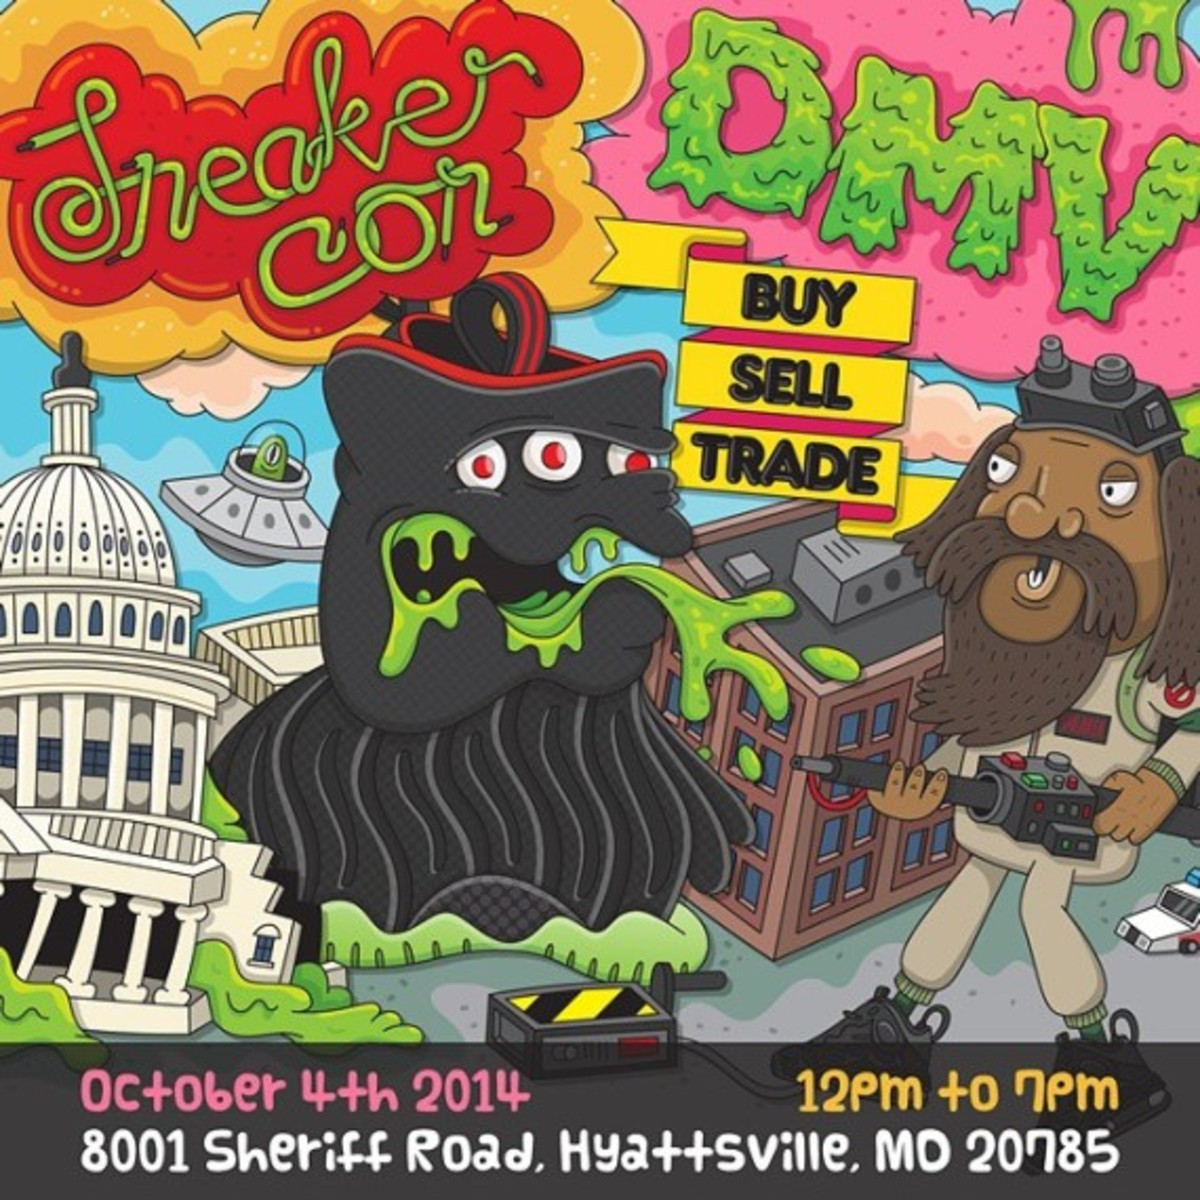 Sneaker Con Washington DC/DMV – Saturday, October 4th, 2014 - 0